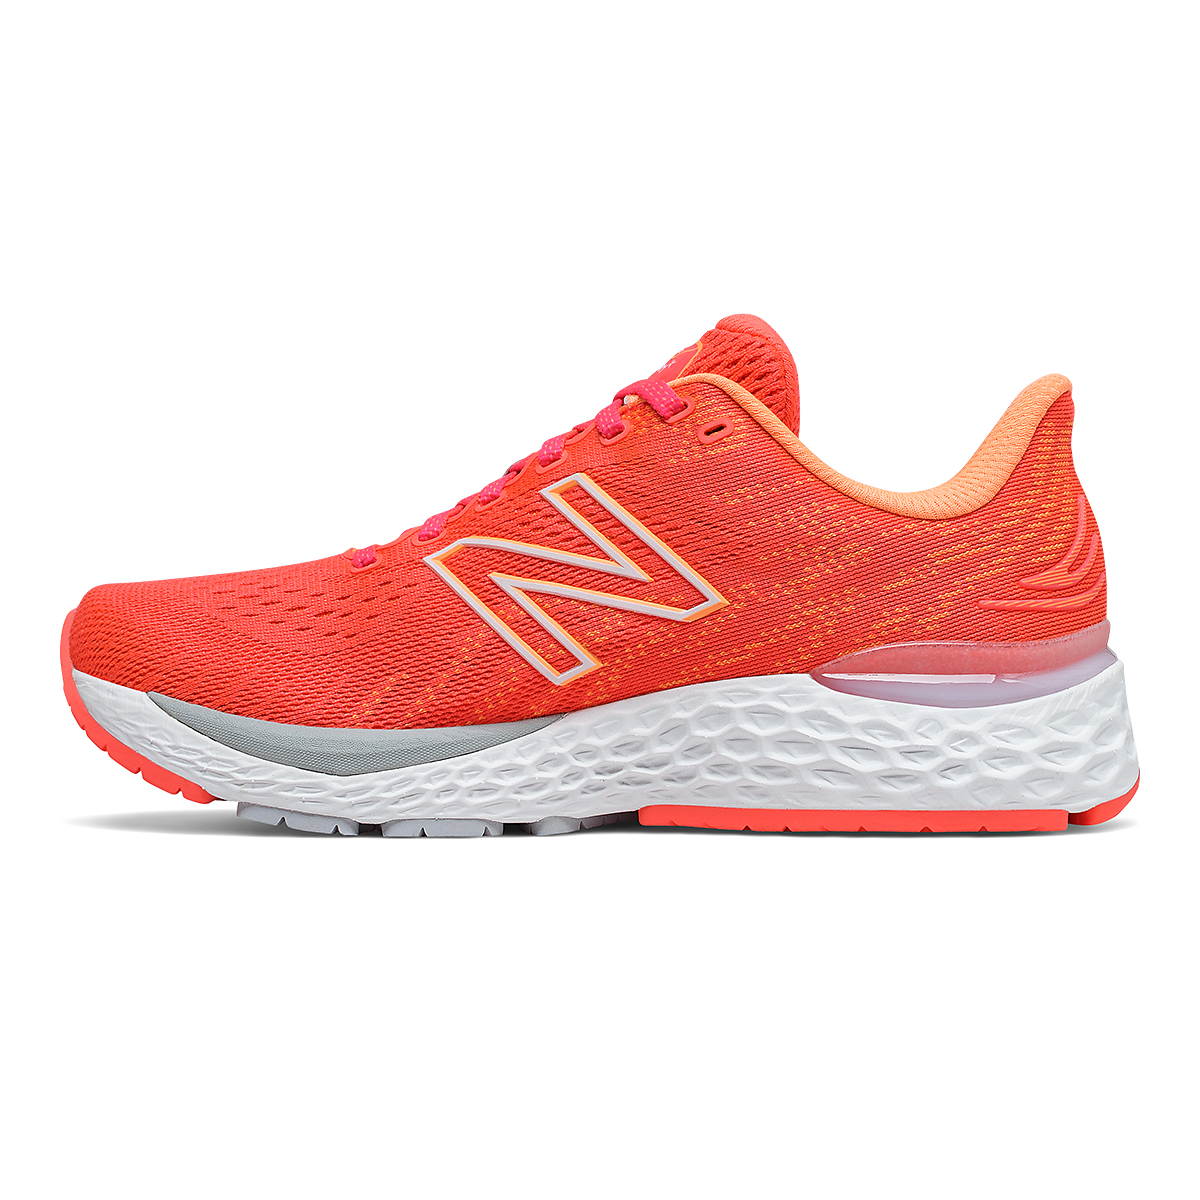 Women's New Balance 880V11 Running Shoe - Color: Vivid Coral/Citrus Punch - Size: 5 - Width: Extra Wide, Vivid Coral/Citrus Punch, large, image 2